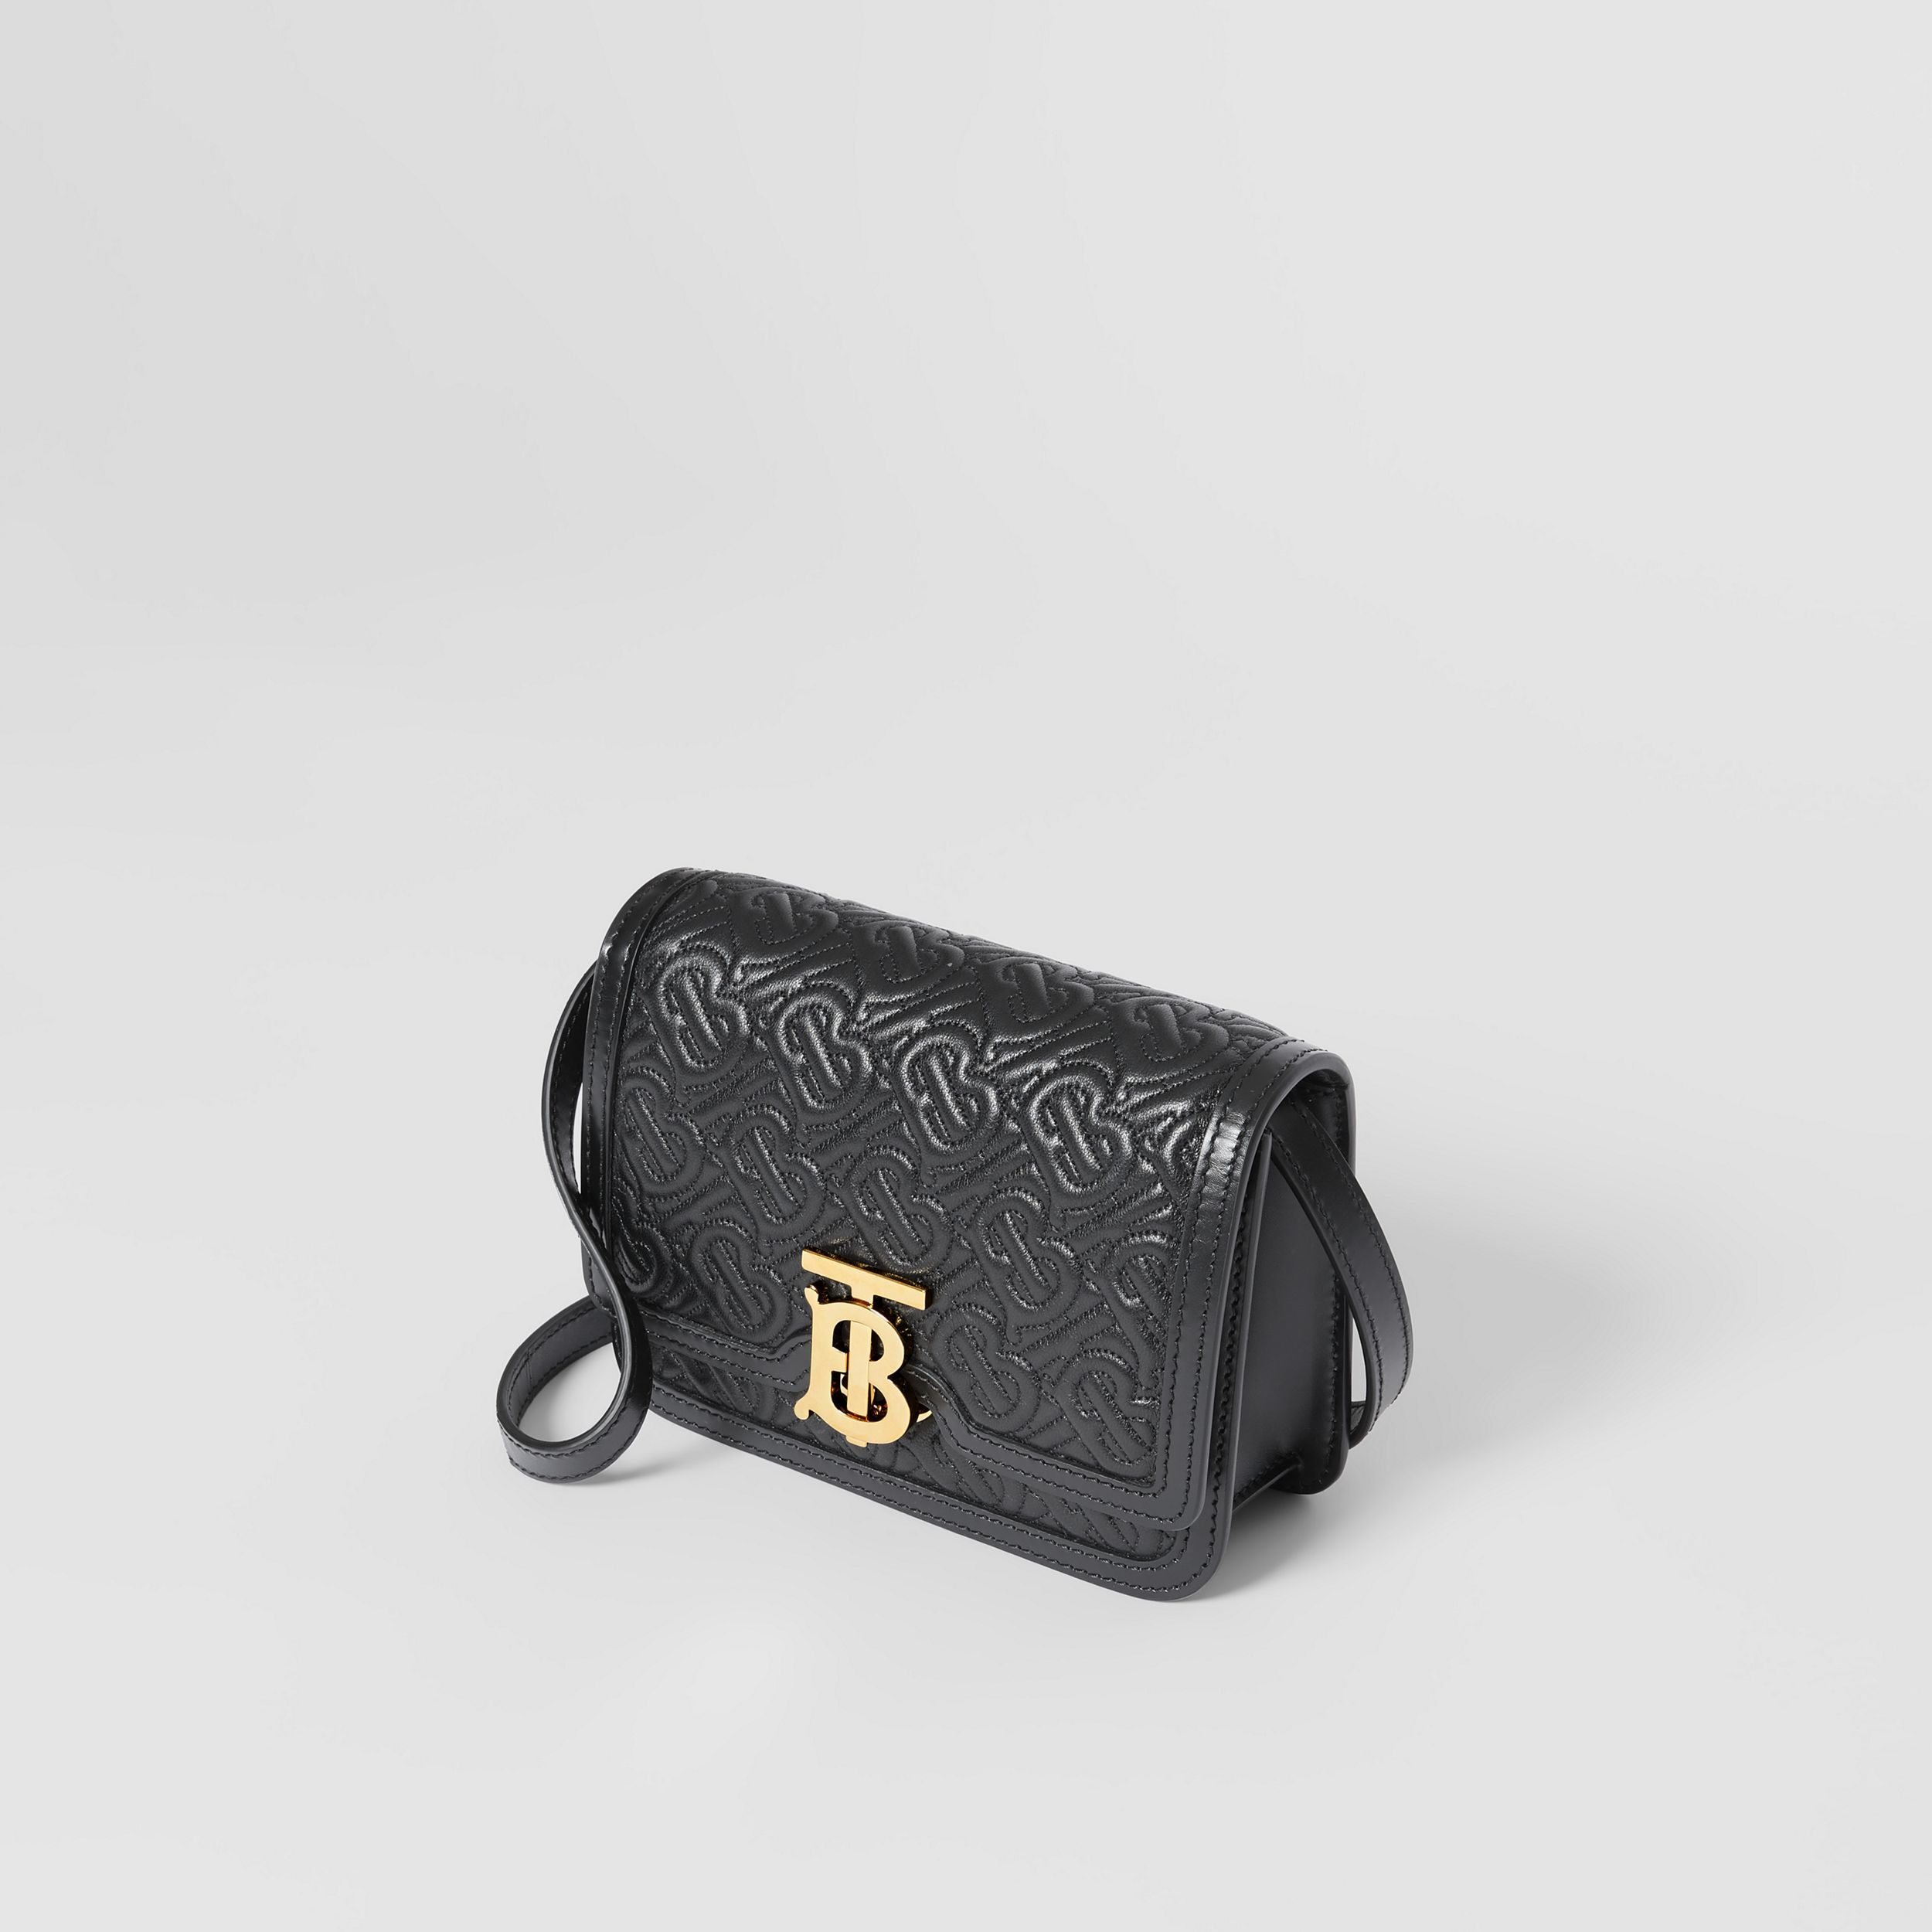 Mini Quilted Monogram Lambskin TB Bag in Black - Women | Burberry - 4